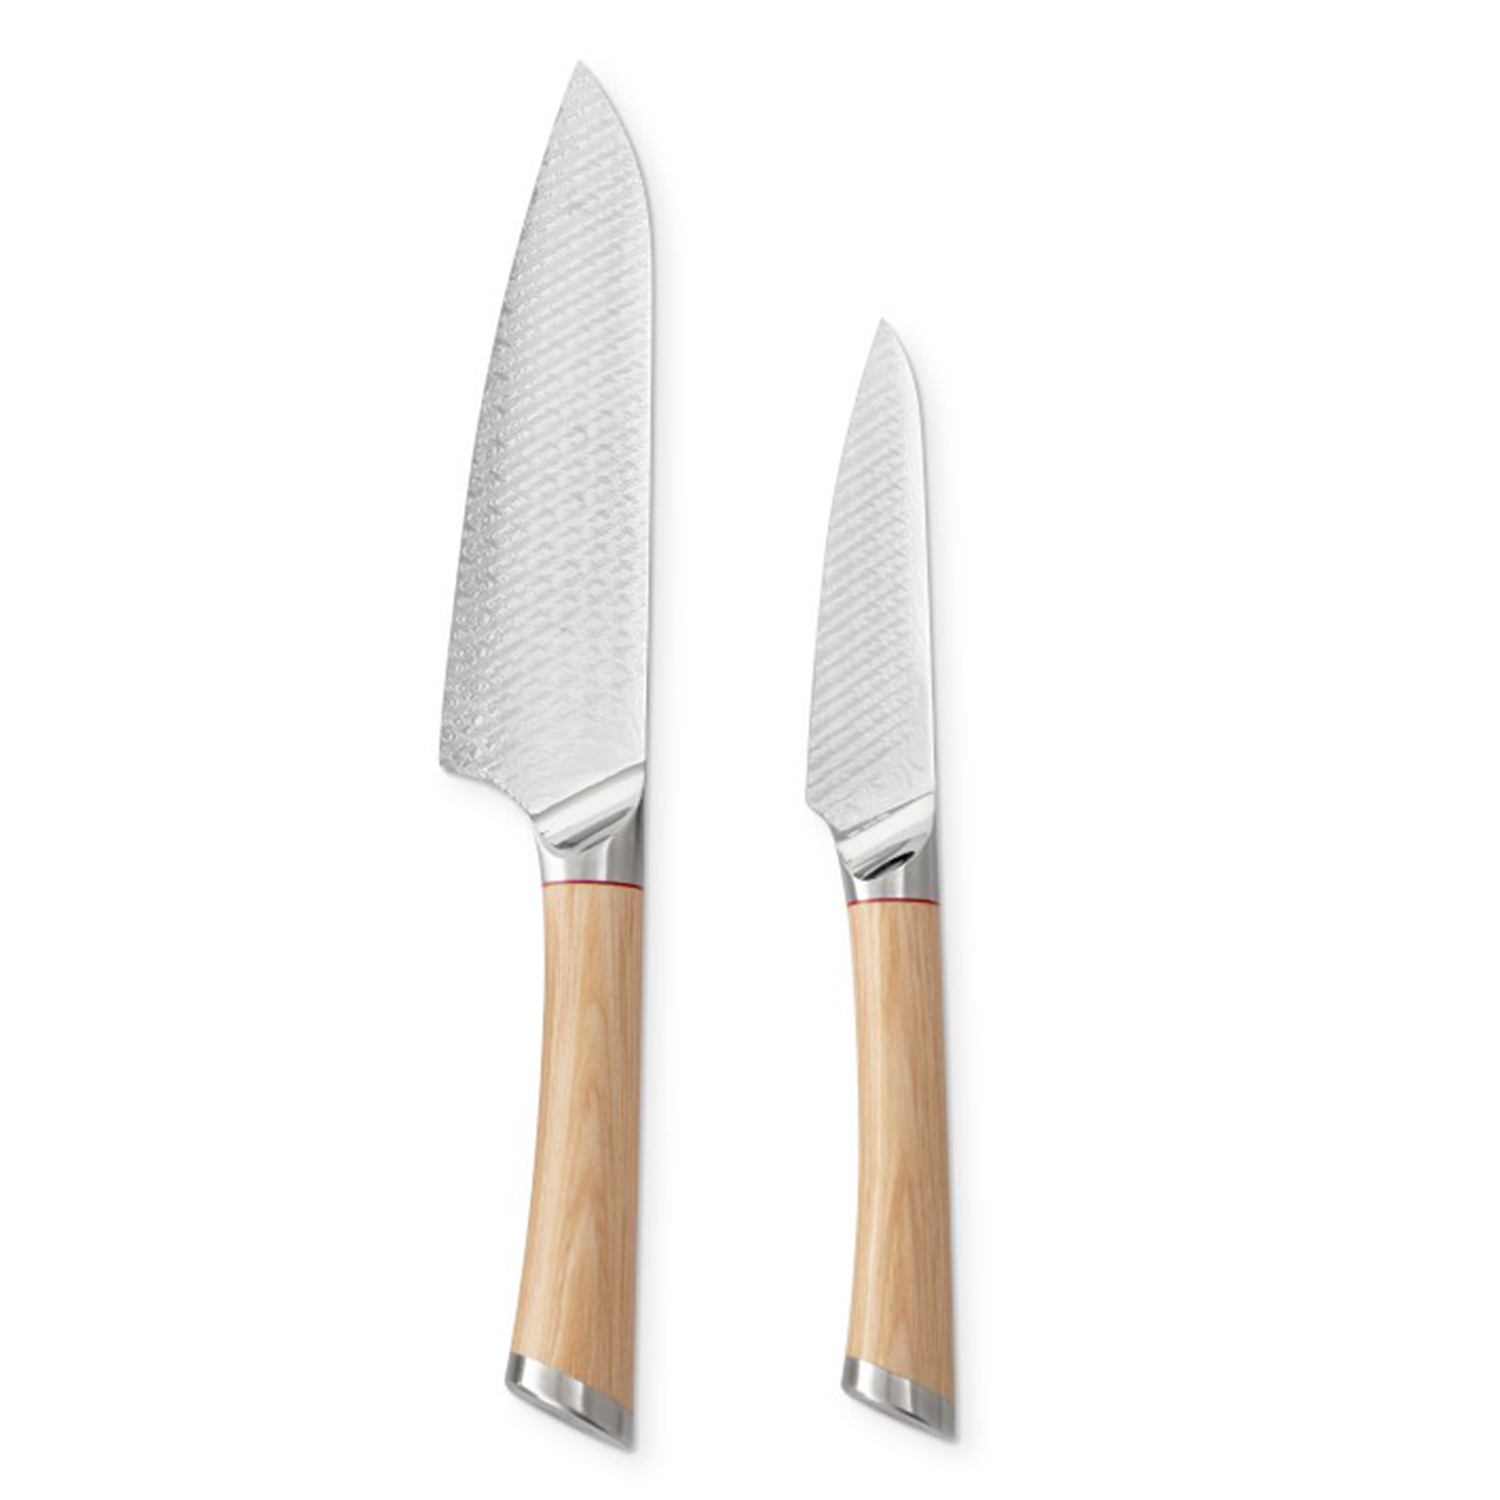 Shun Hikari 2-Piece Prep Knife Set, Kitchen Knife Sets